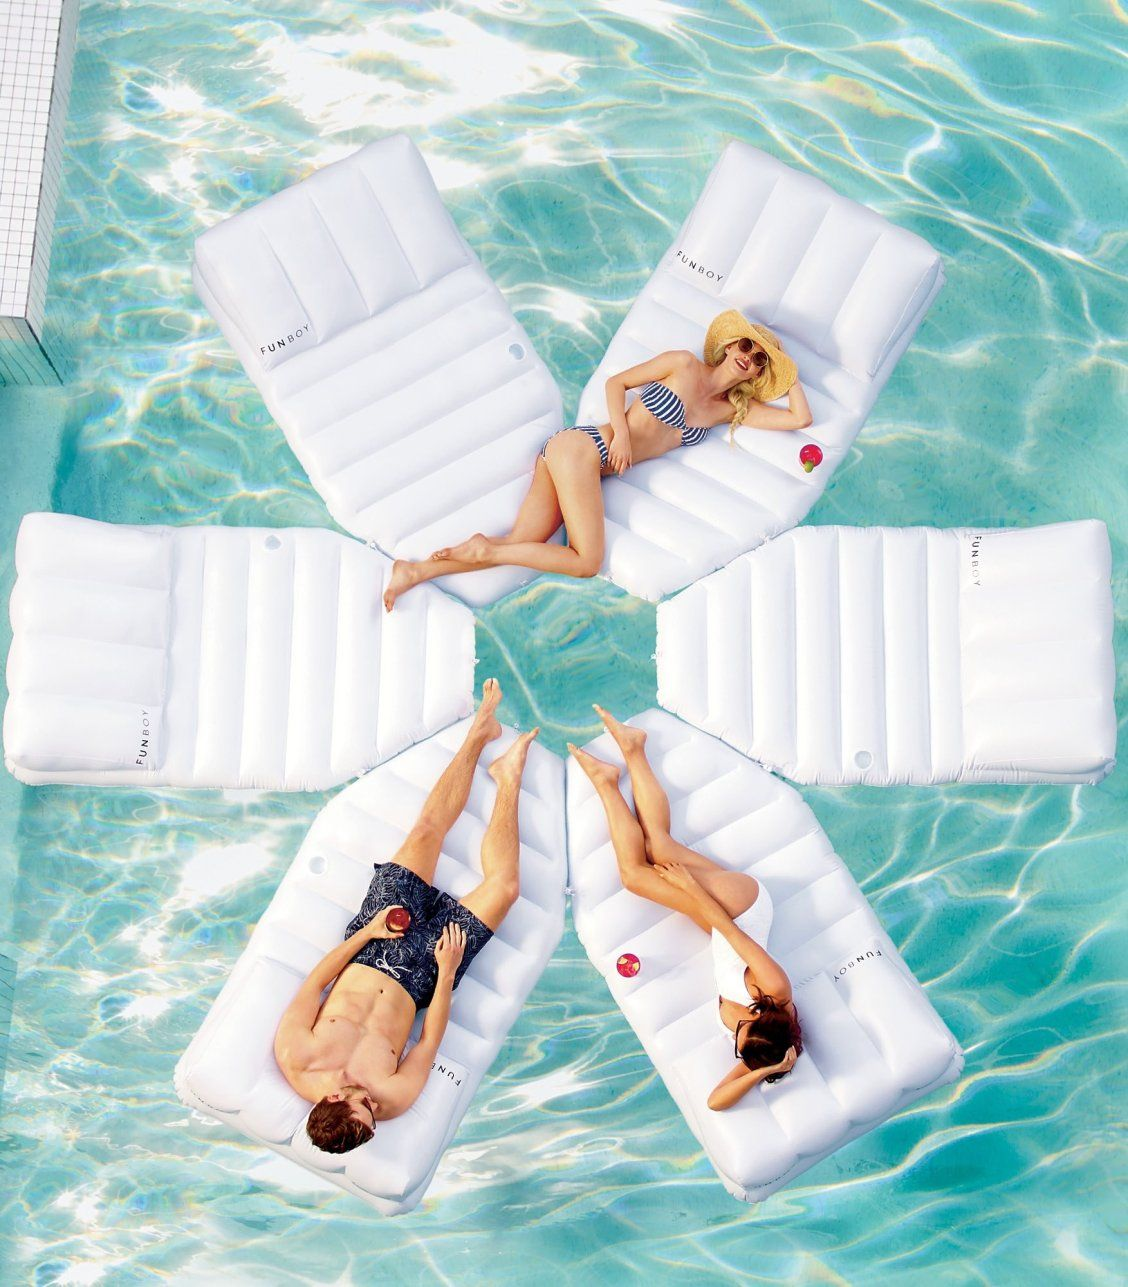 Modular Sun Floating Daybed Frontgate Pool Floats For Adults Pool Floats Cool Pool Floats